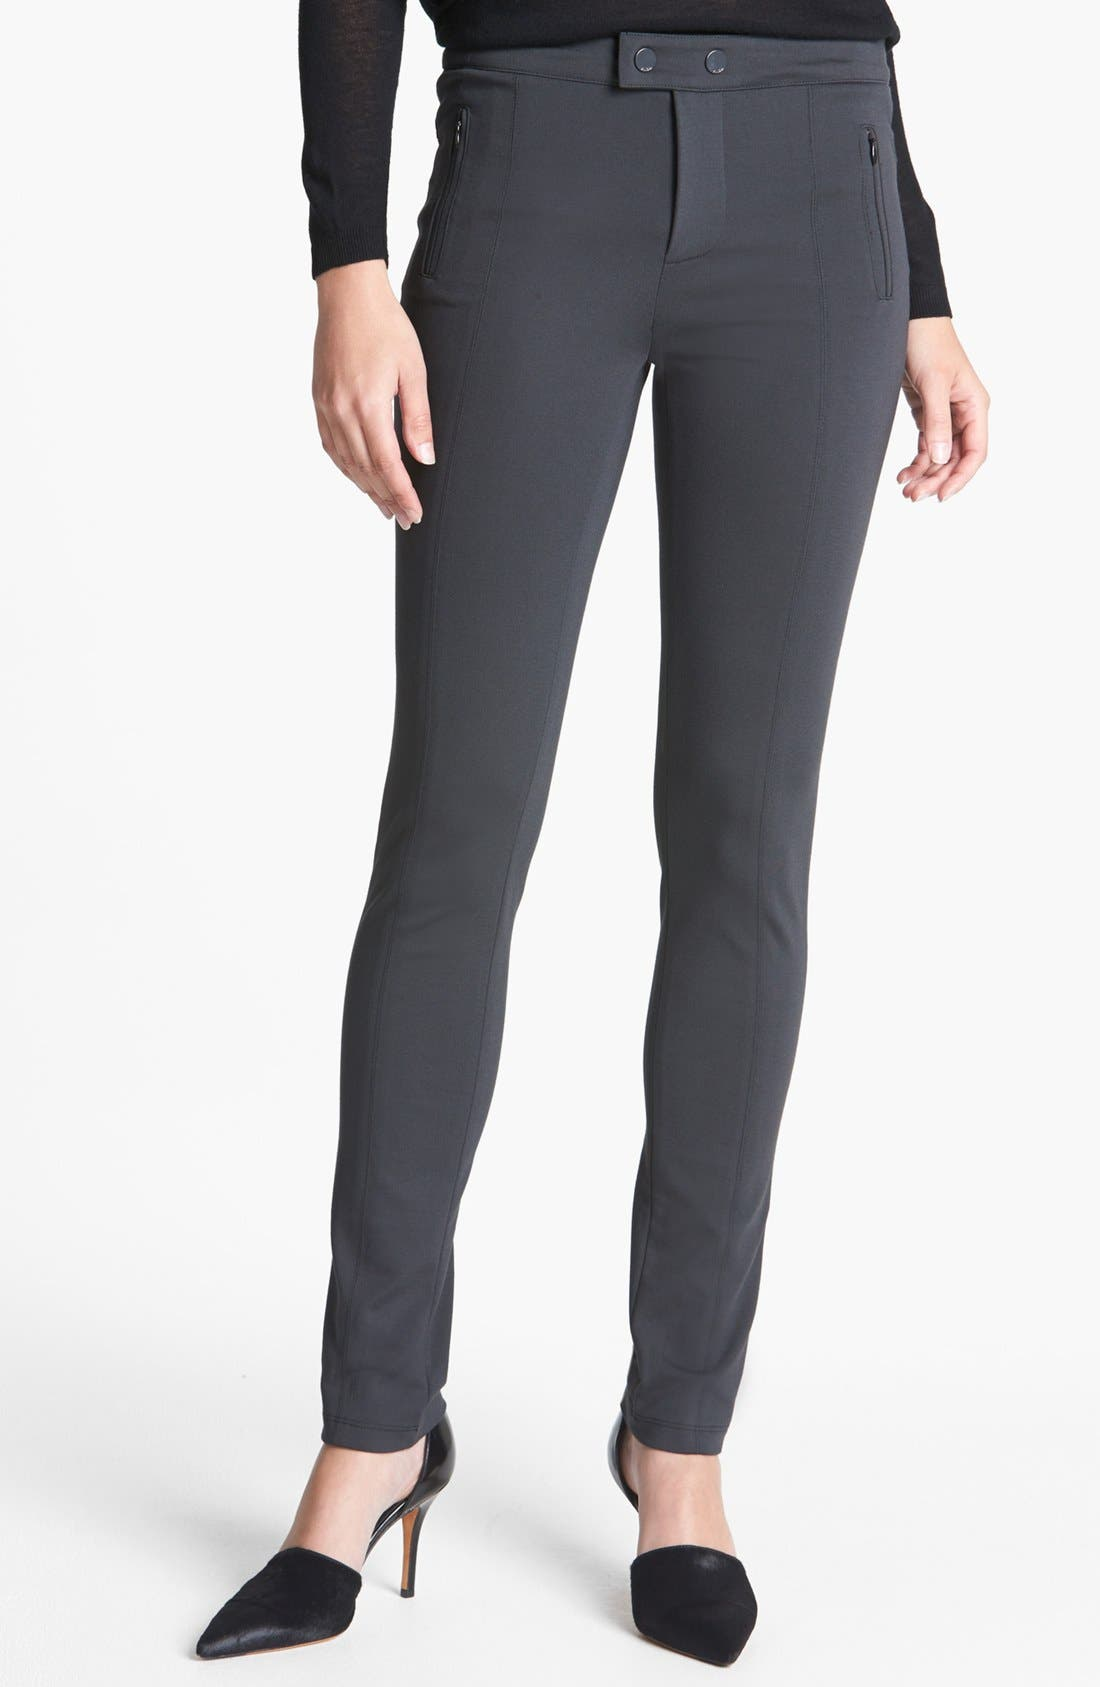 VINCE 'Ski' Ponte Pants, Main, color, 021